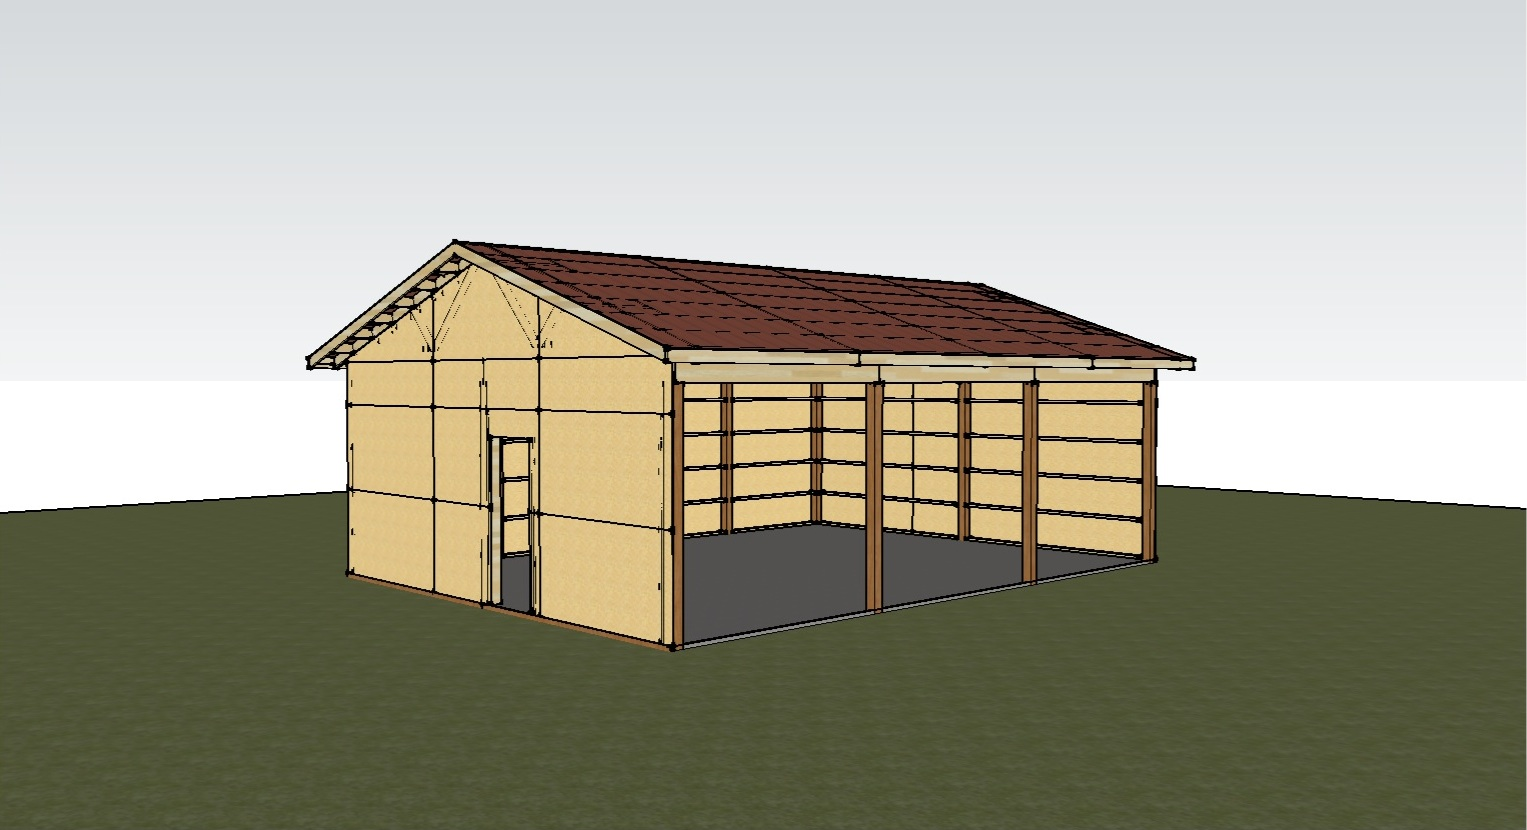 Pole barn plan joy studio design gallery best design for Pole barn layout